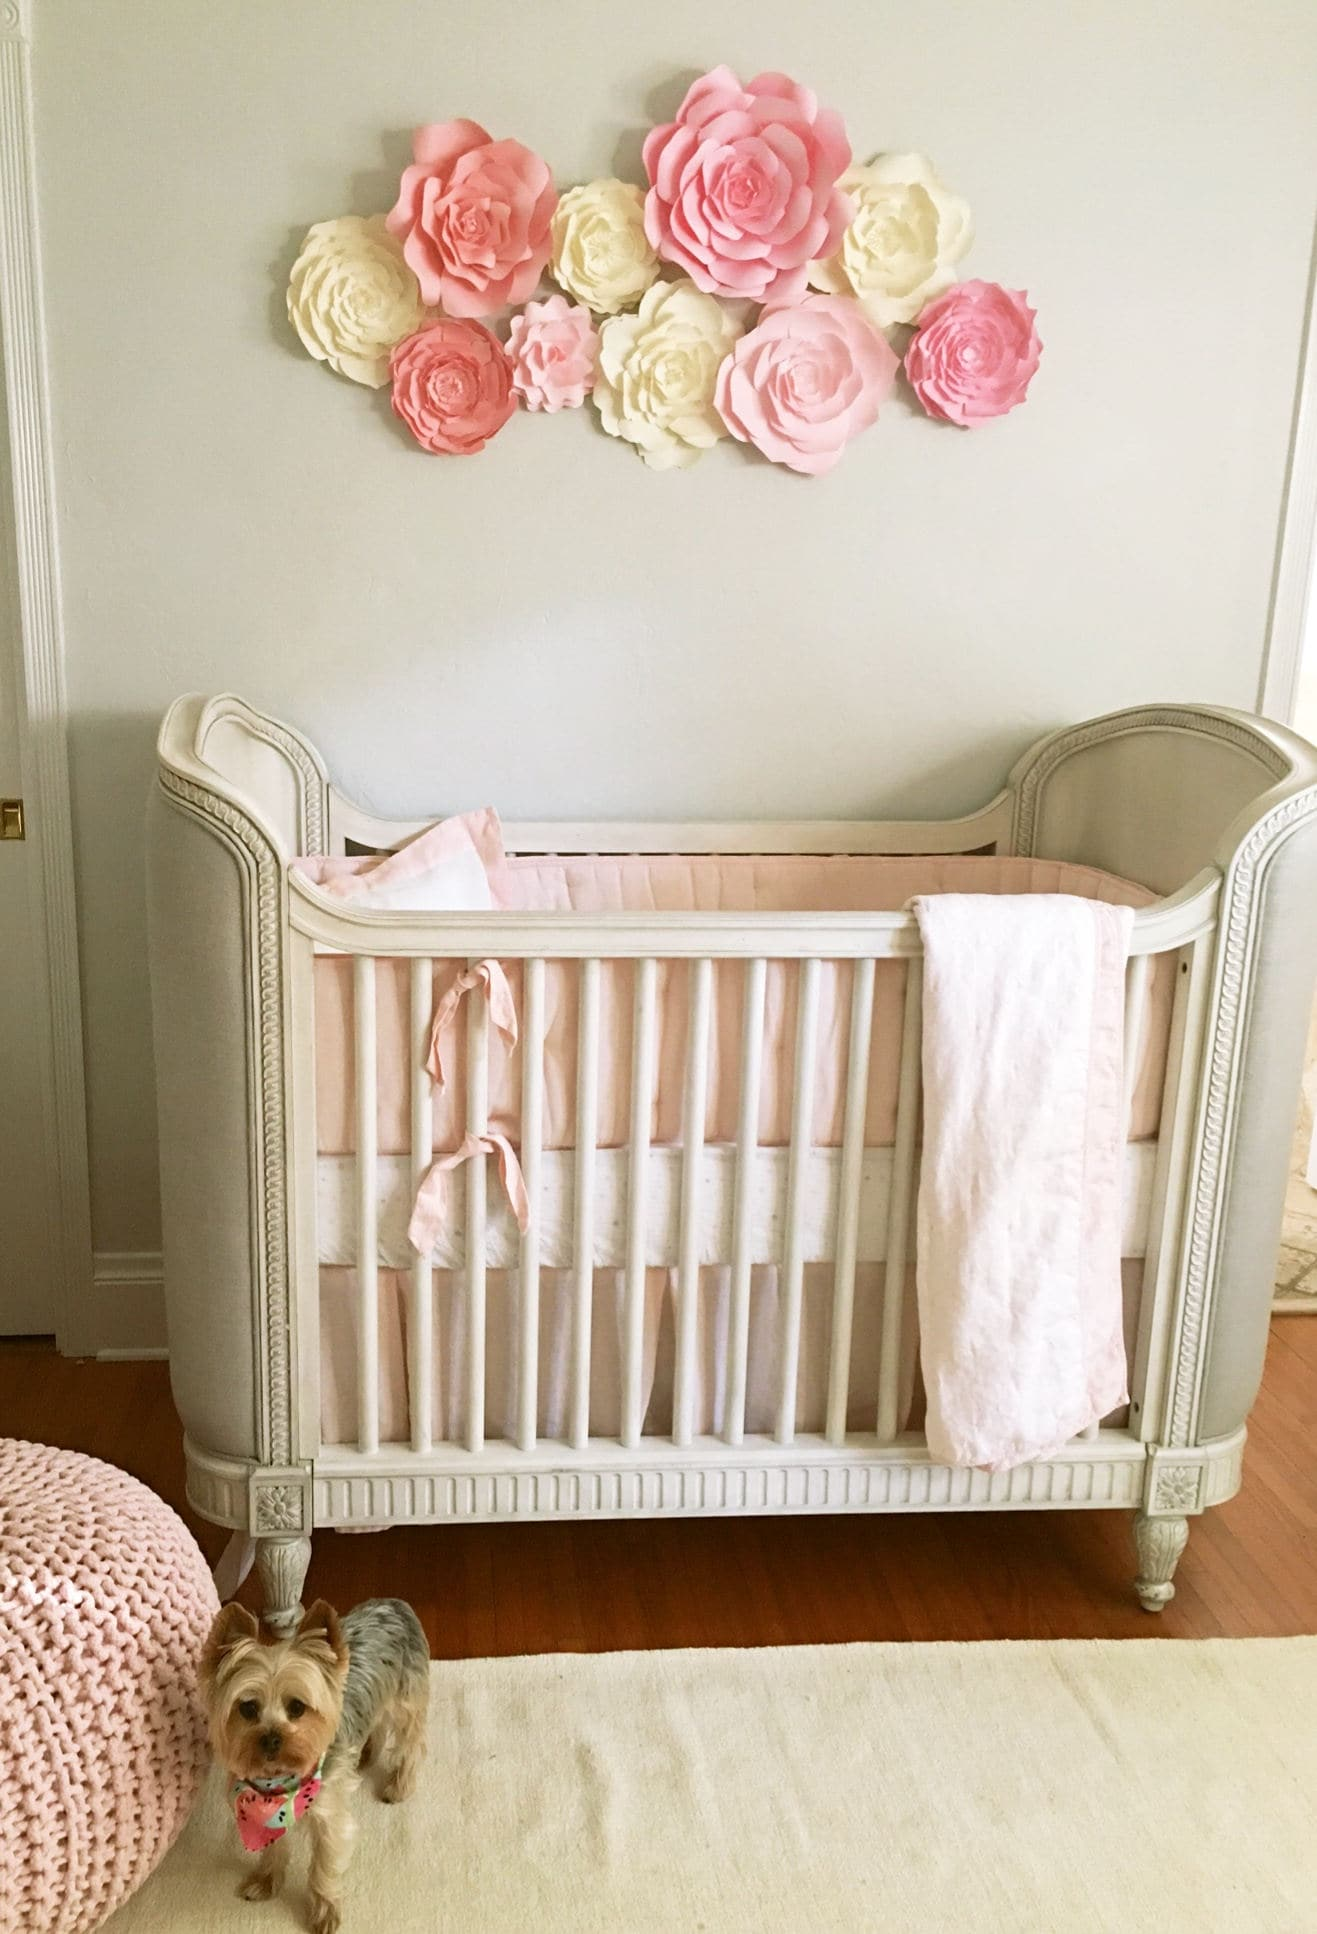 Best Baby Nursery Wall Decor Paper Flowers For Girls Nursery Etsy This Month